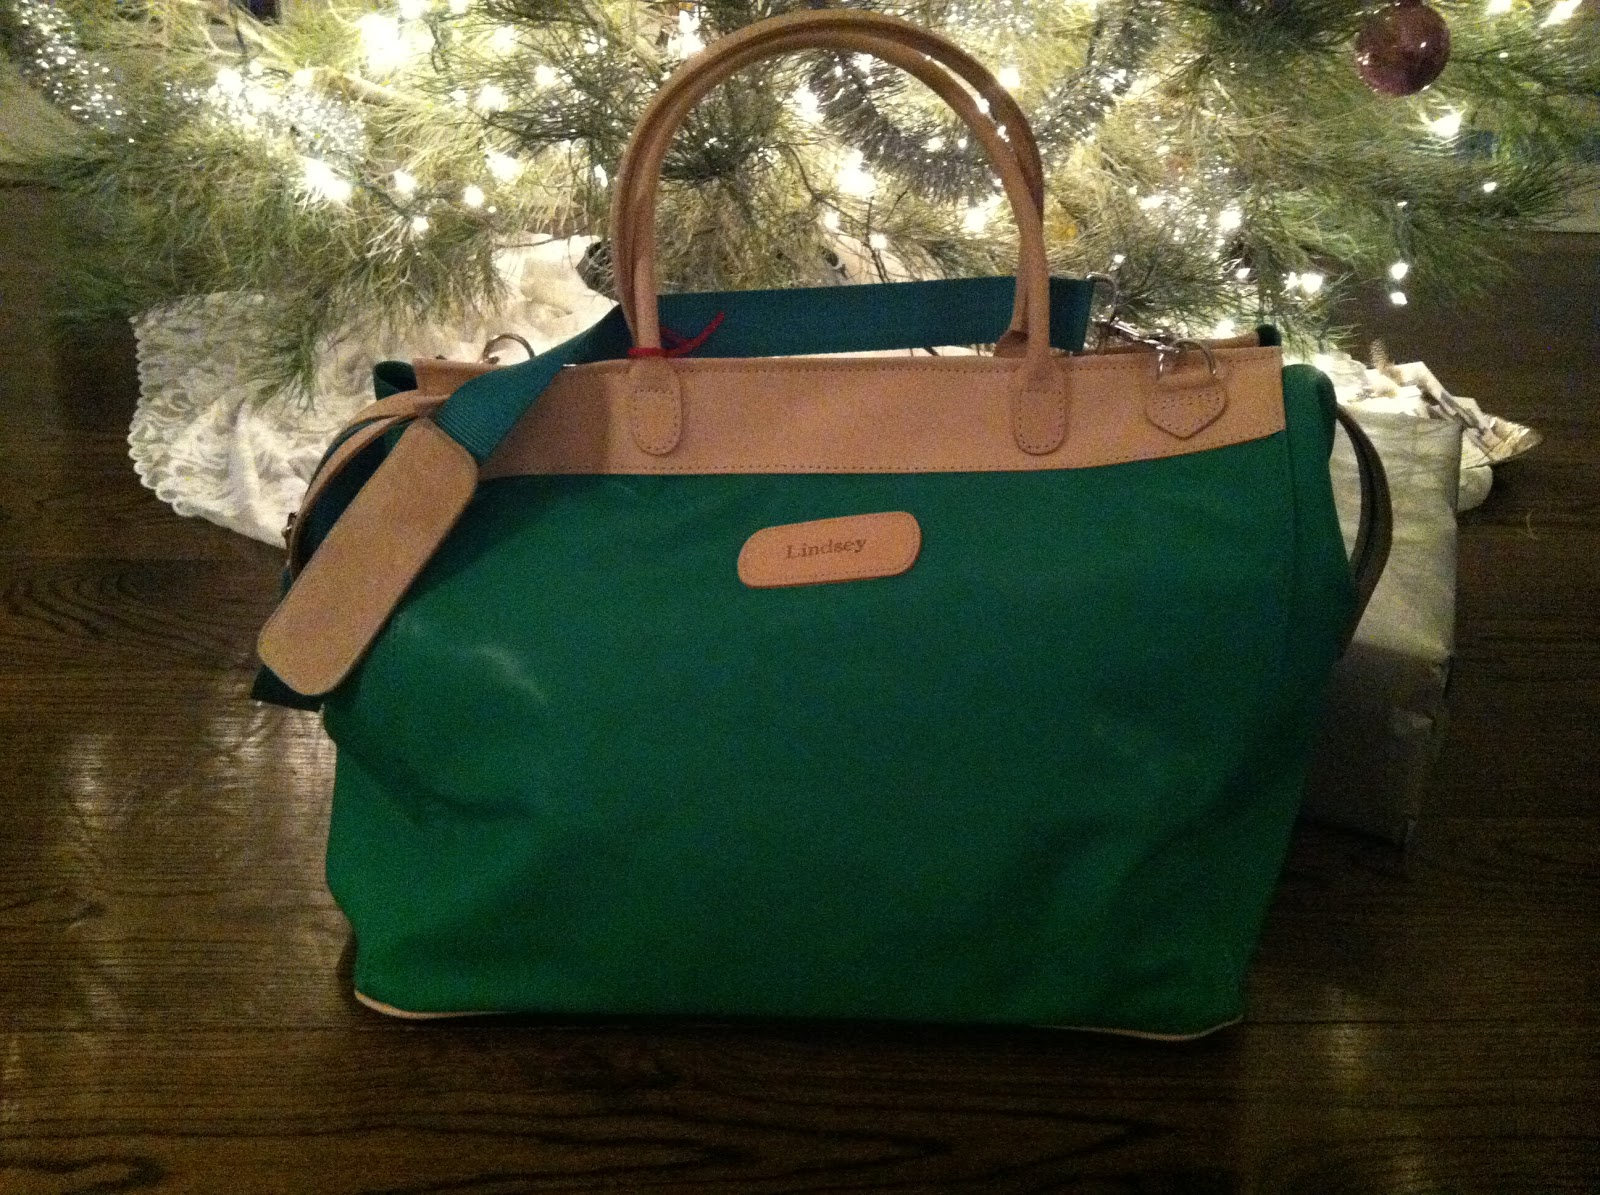 The Burleson Bag In Kelly Green Makes Perfect Companion For Those Long Weekend Getaways It Has Inside And Outside